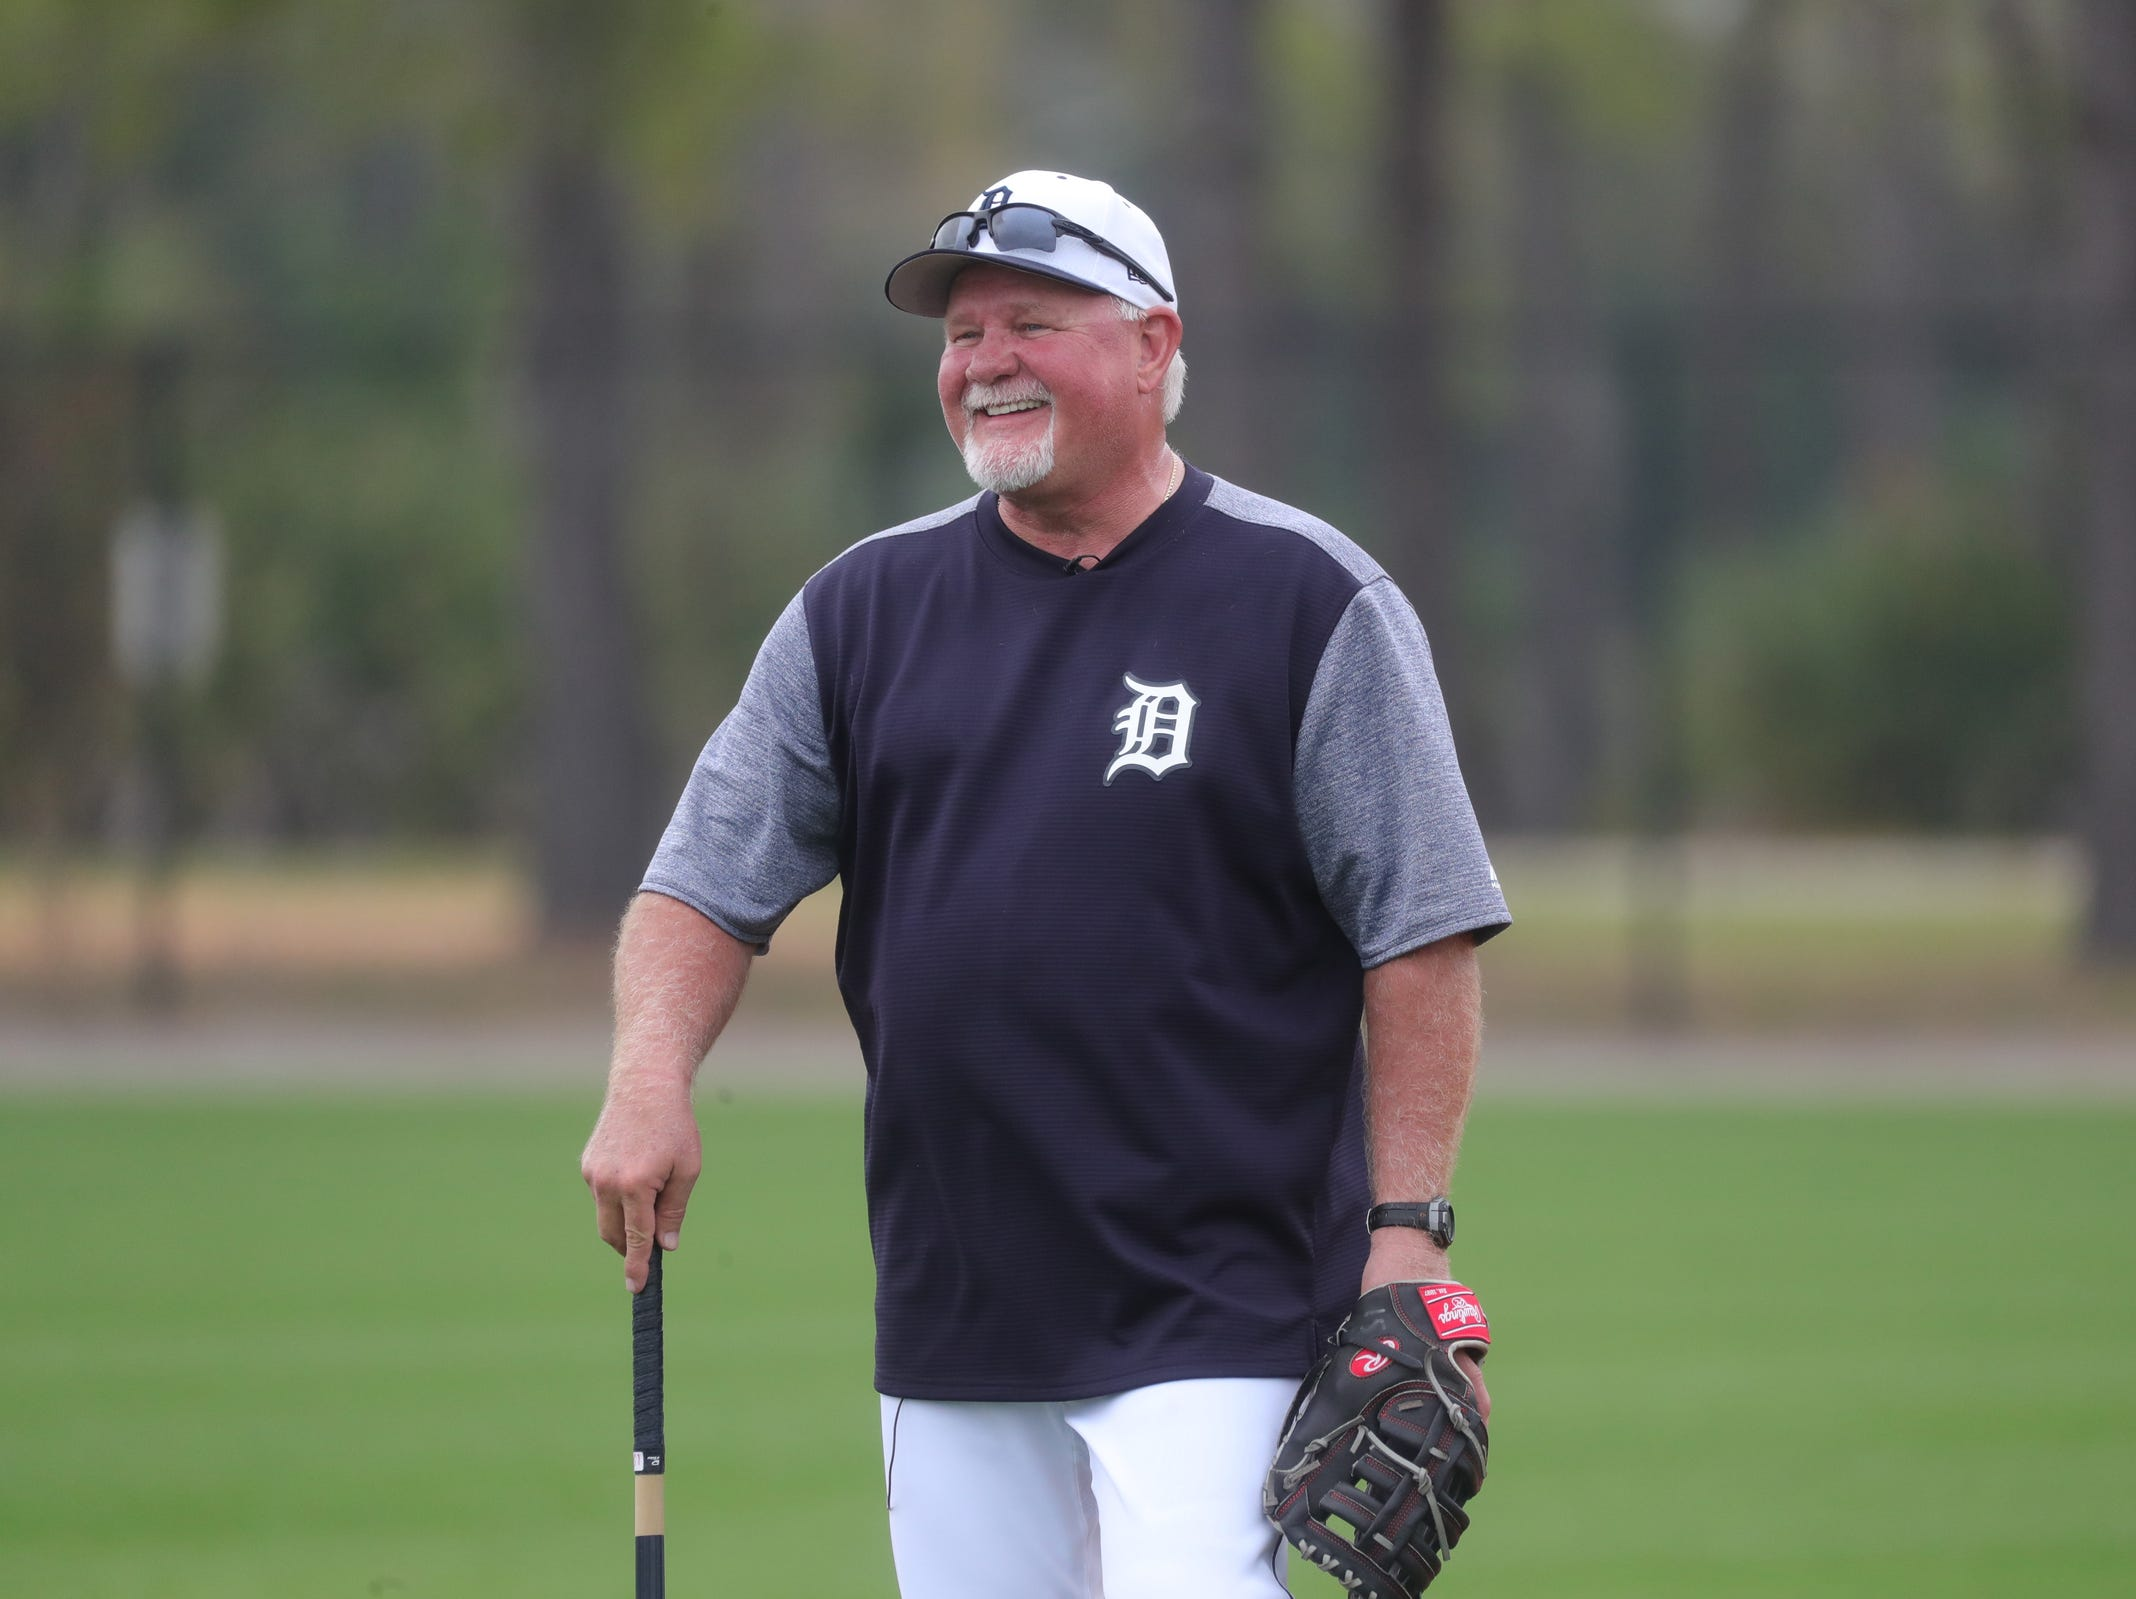 Tigers manager Ron Gardenhire on the field during the first full team spring training practice on Monday, Feb. 18, 2019, at Joker Marchant Stadium in Lakeland, Florida.